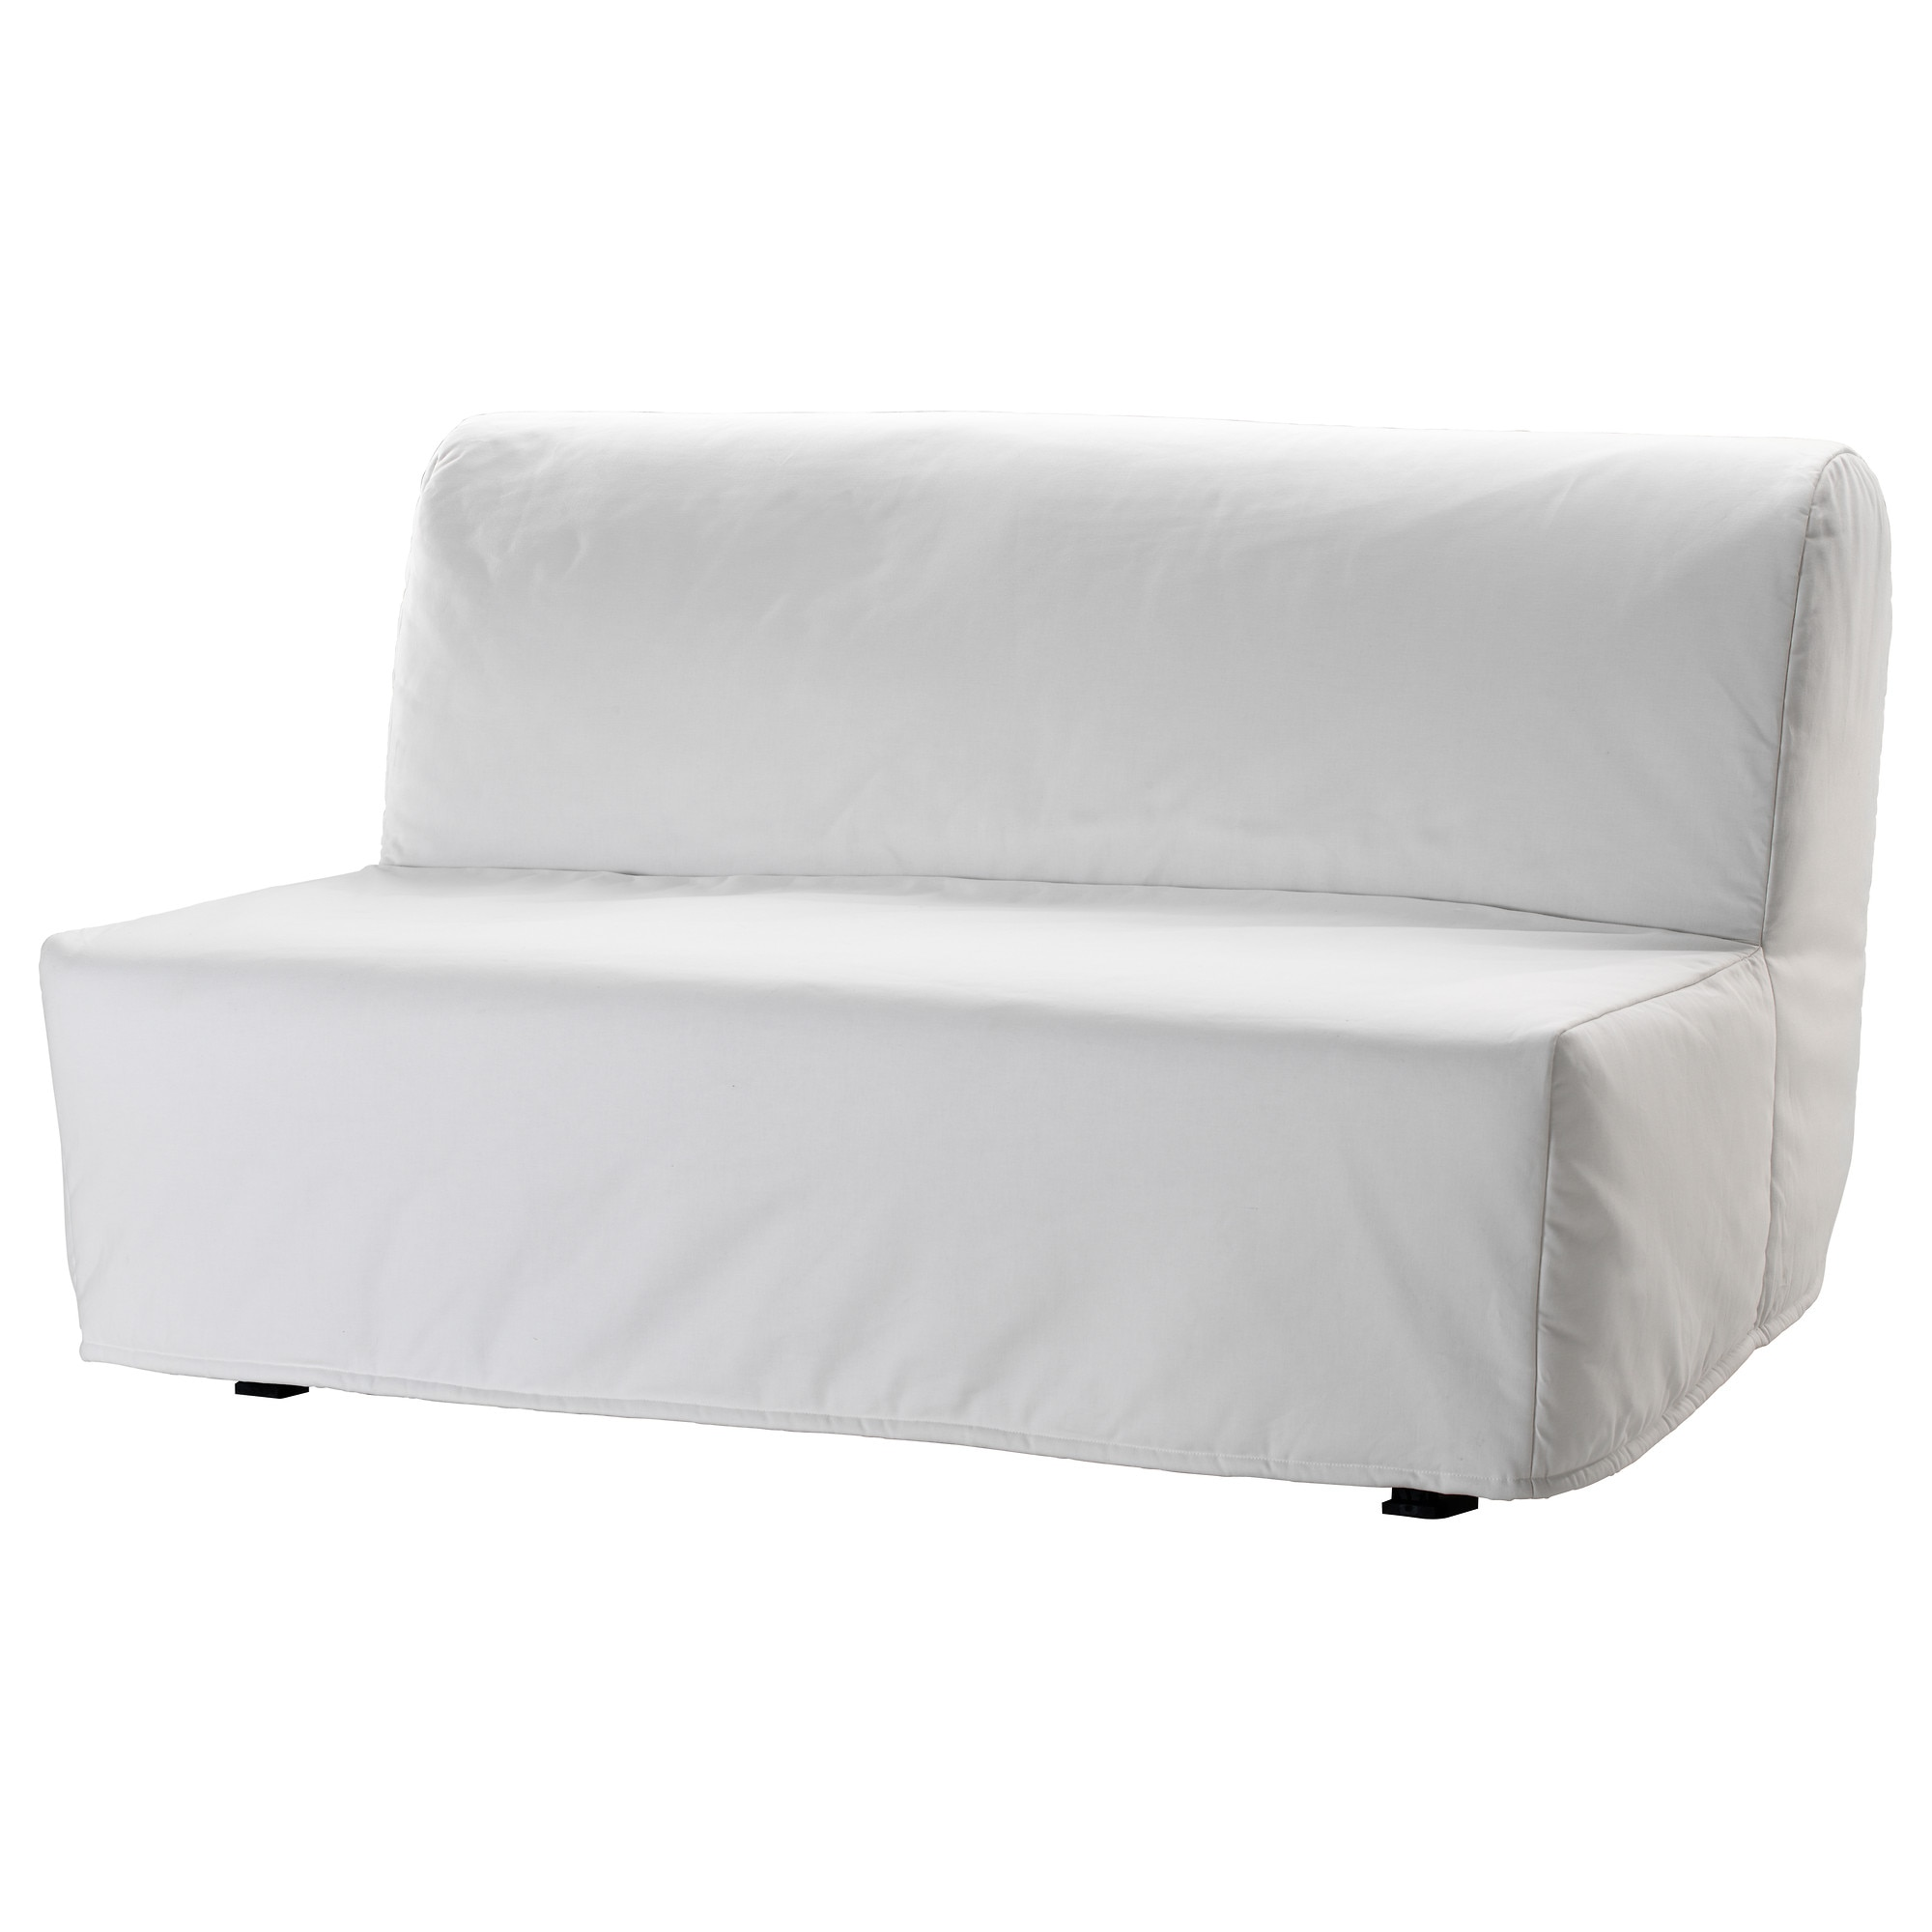 elegant loveseat comforter bed outdoor comfortable interior covers clean of and unique furniture mattresses sets beds sofa coolest more futon patio